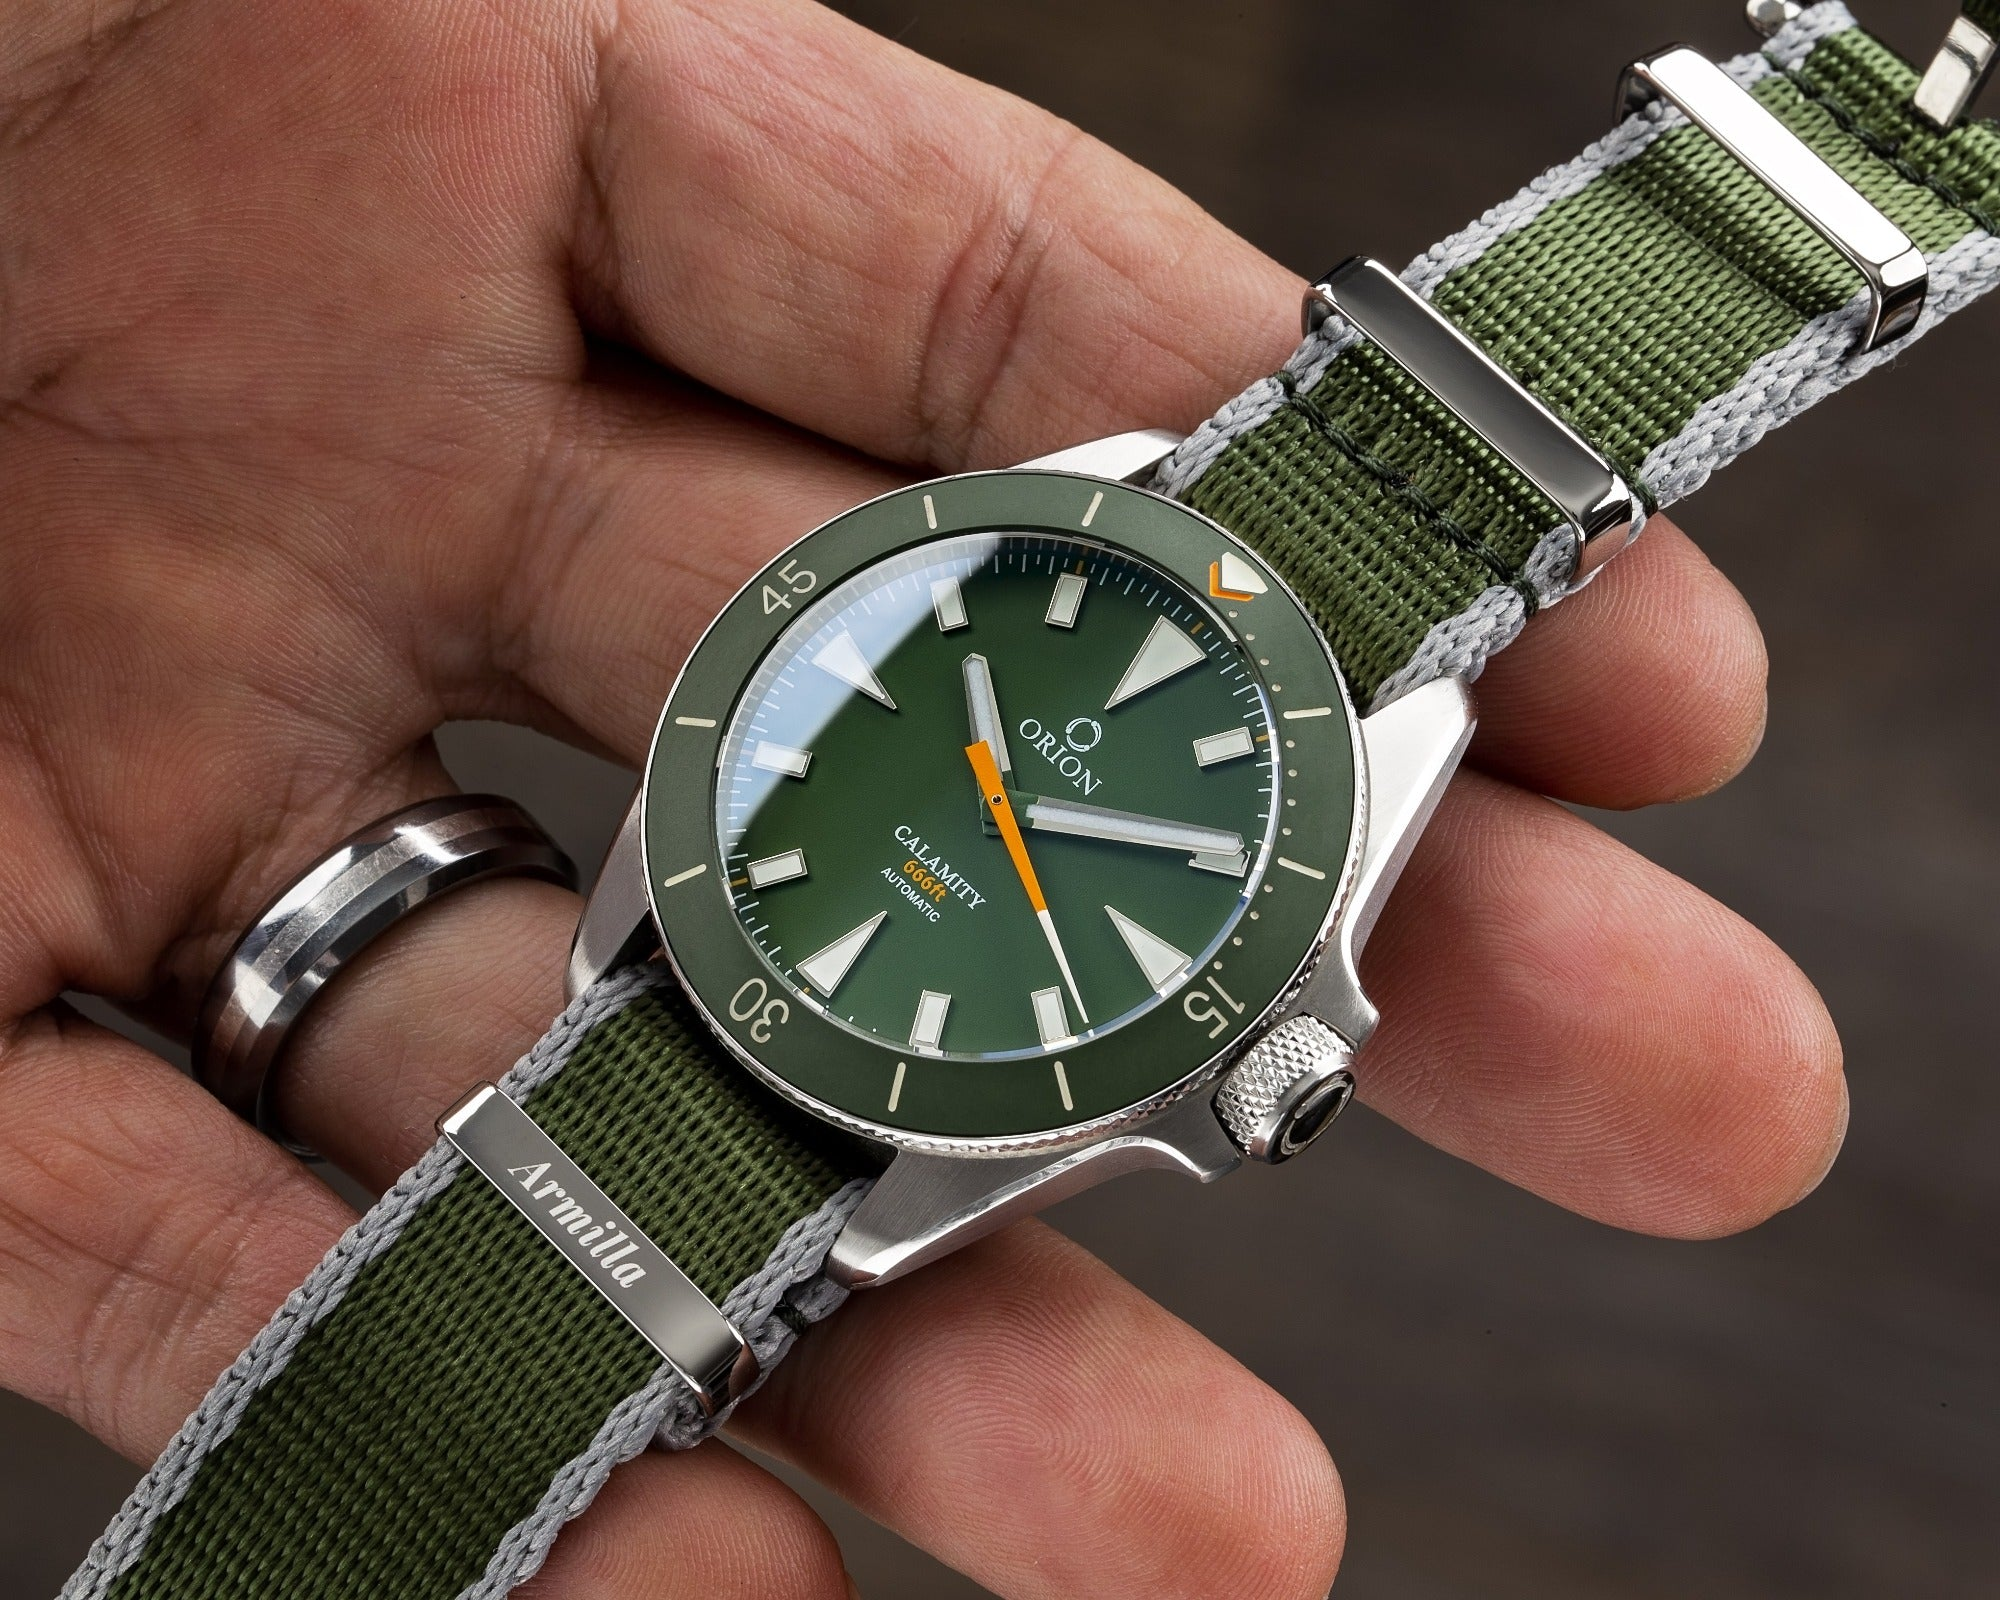 Armilla Green NATO Watch Strap / Band on Orion Drab Calamity Diver's Watch